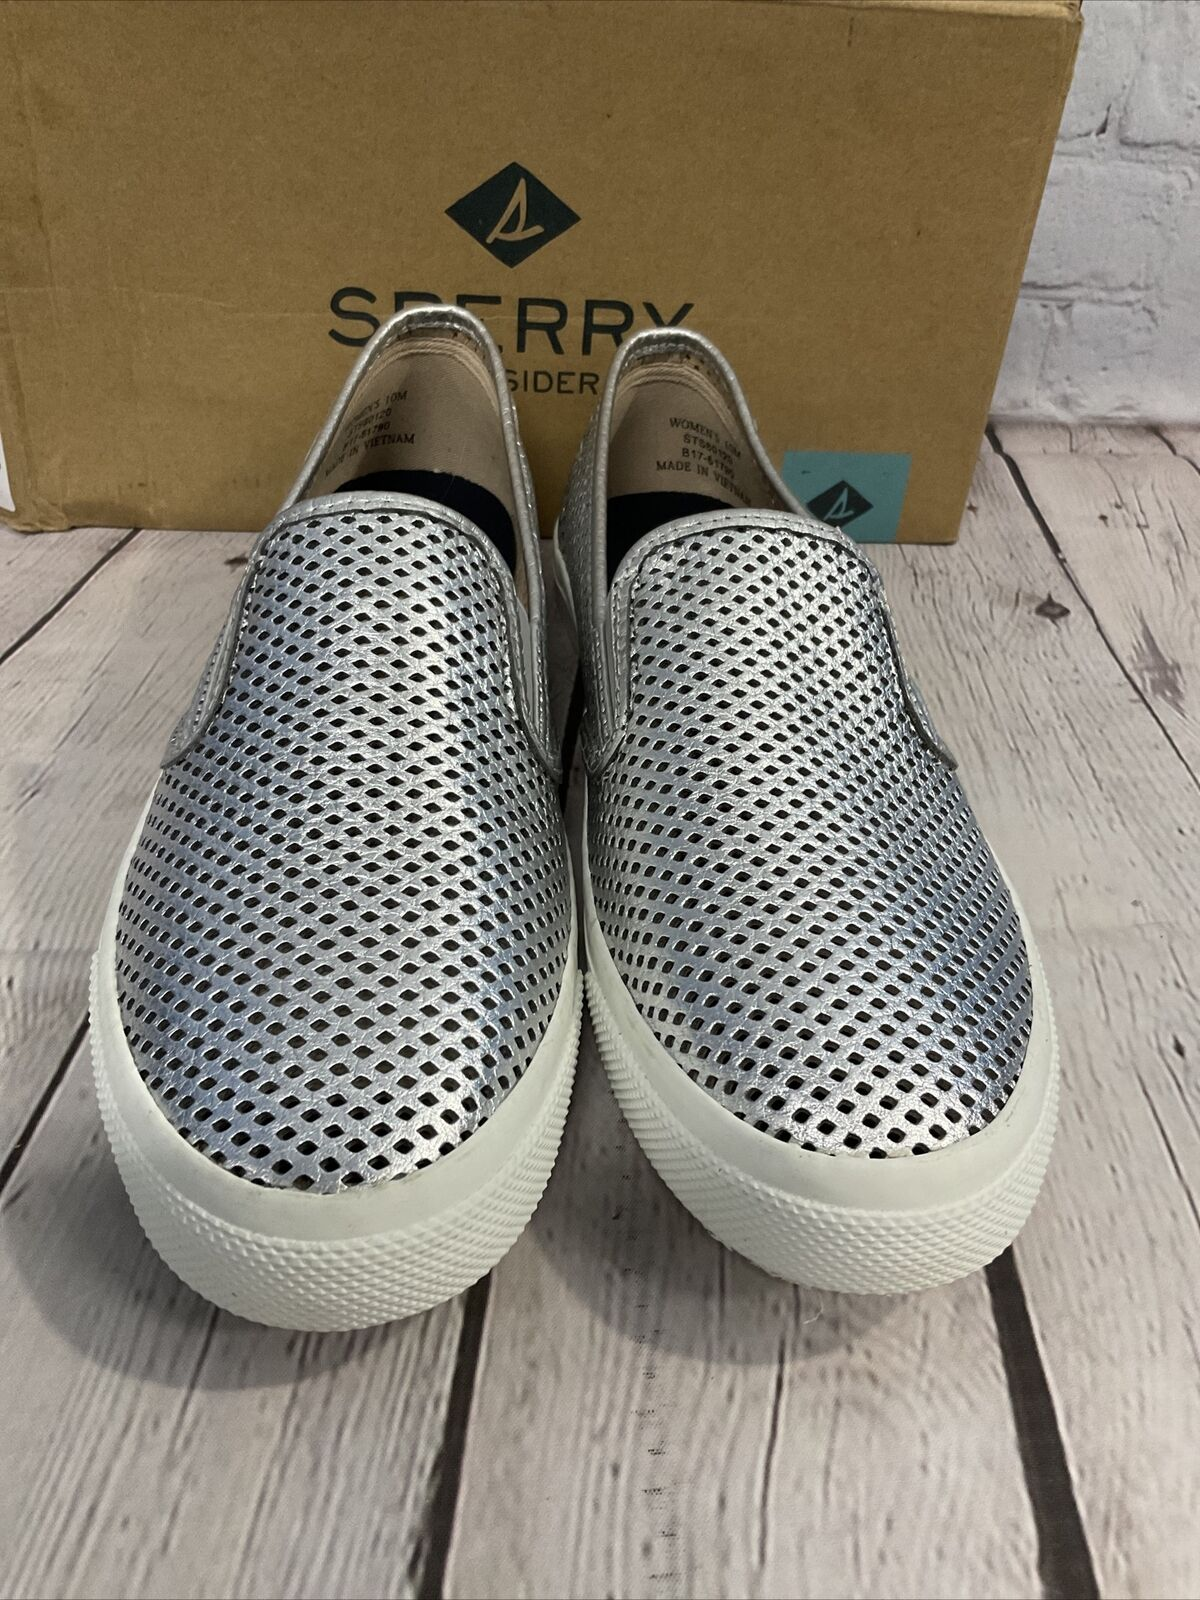 Sperry Top-Side Women's SeaSide Perf Slip-On Shoes Leather Silver Size 10 Medium